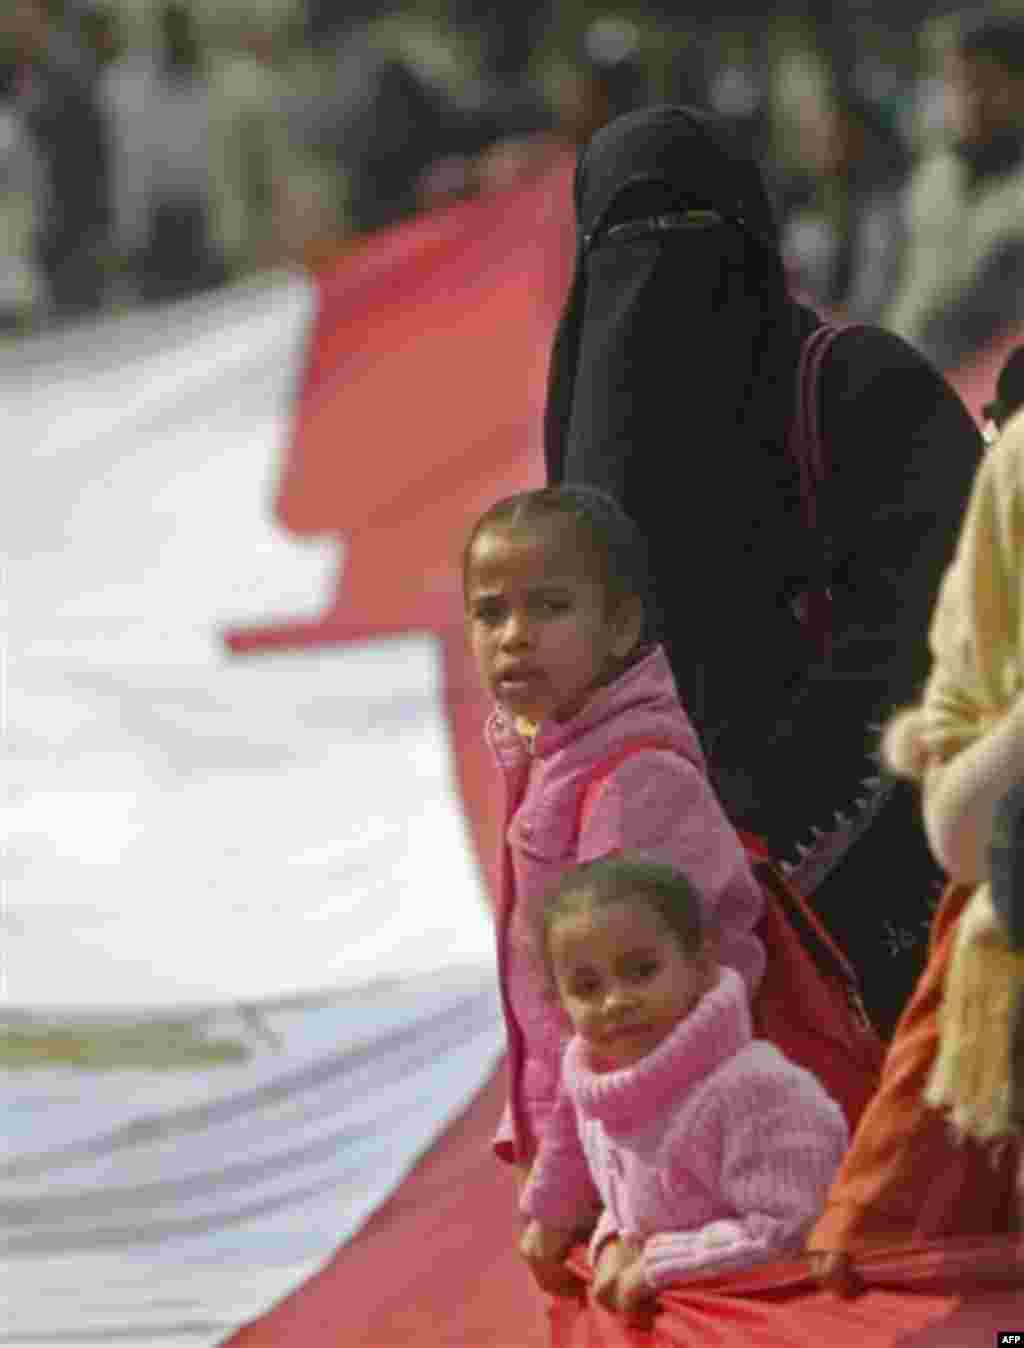 An Egyptian protester and her childern wave a giant Egyptian flag in front of the Egyptian Parliament in Cairo, Egypt, Wednesday, Feb. 9, 2011. Around 2,000 protesters waved huge flags outside the parliament, located several blocks from Tahrir Square, whe